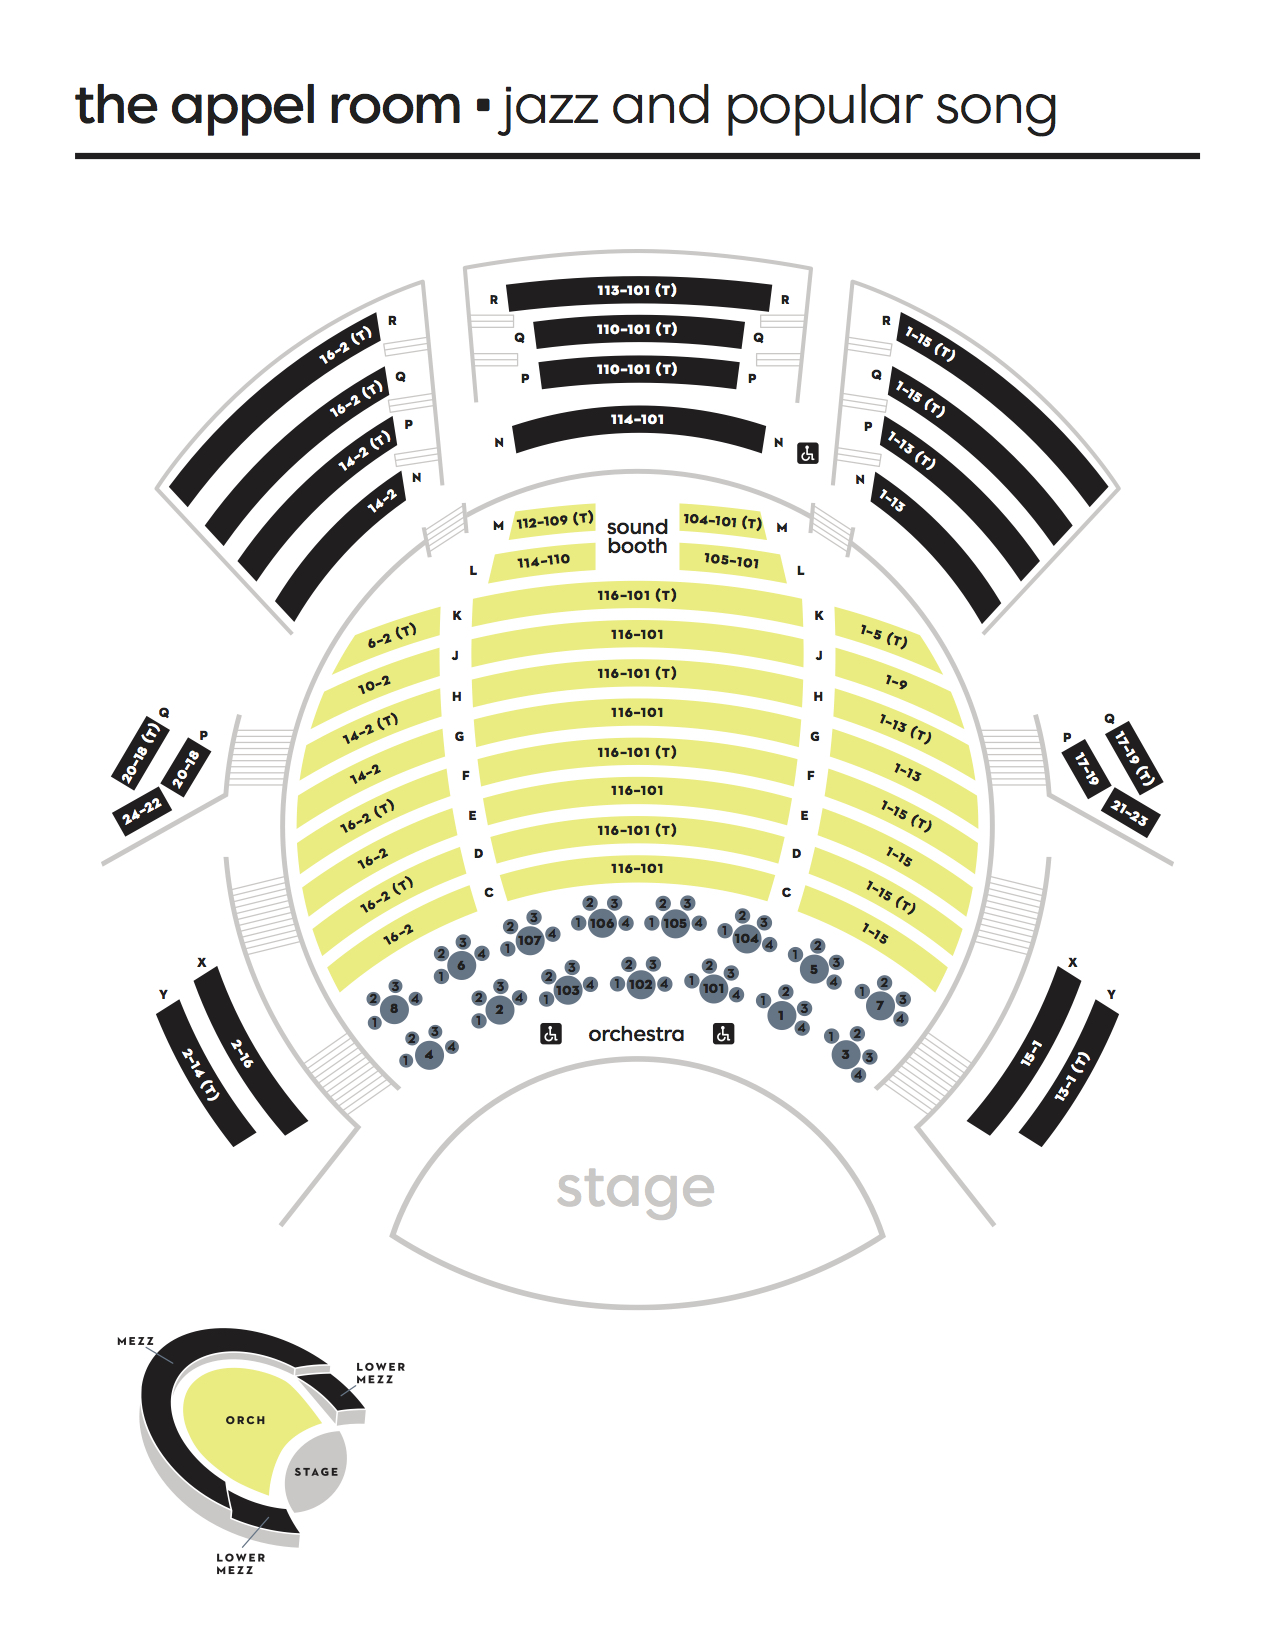 Appel_Room_Jazz_Subscribption_Seating_2